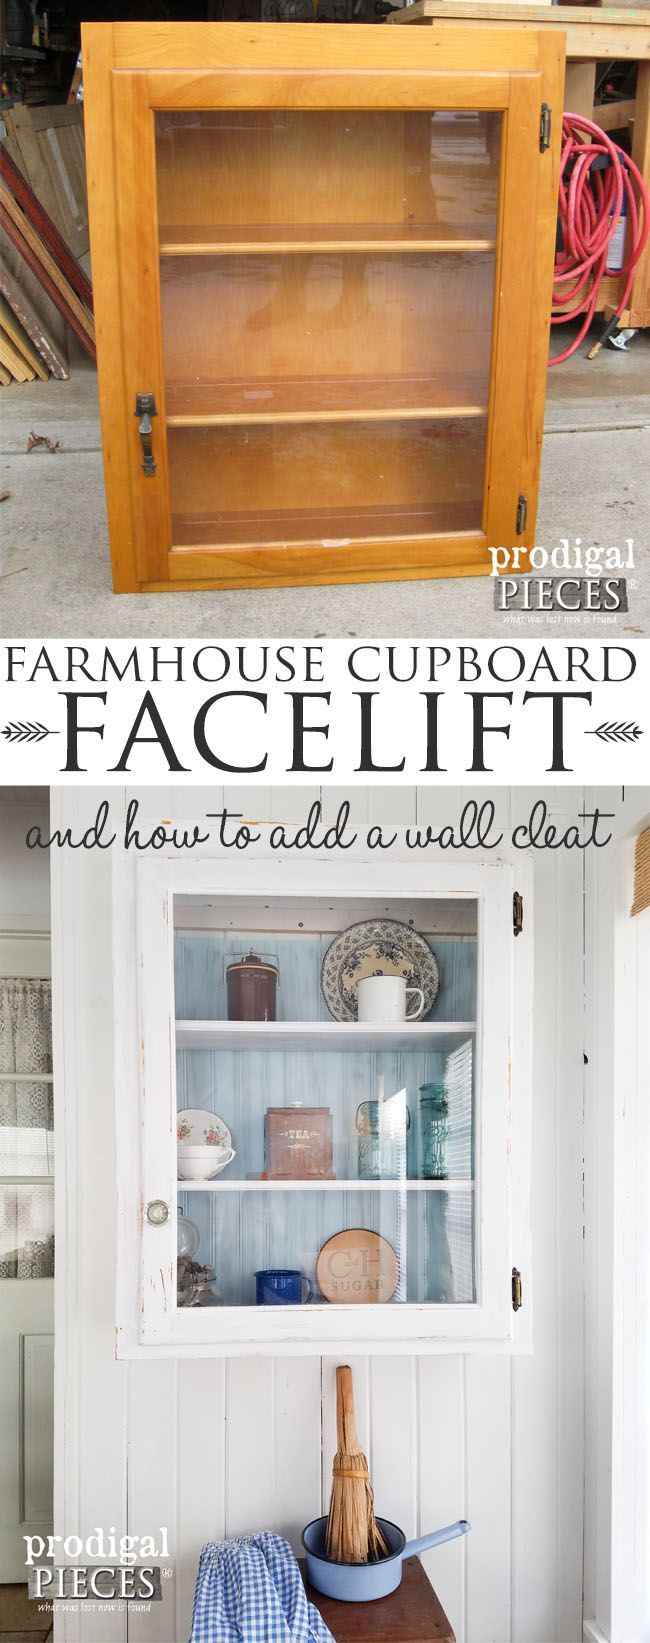 Farmhouse Cupboard Makeover with Tutorial on Adding a Wall Cleat by Prodigal Pieces | prodigalpieces.com